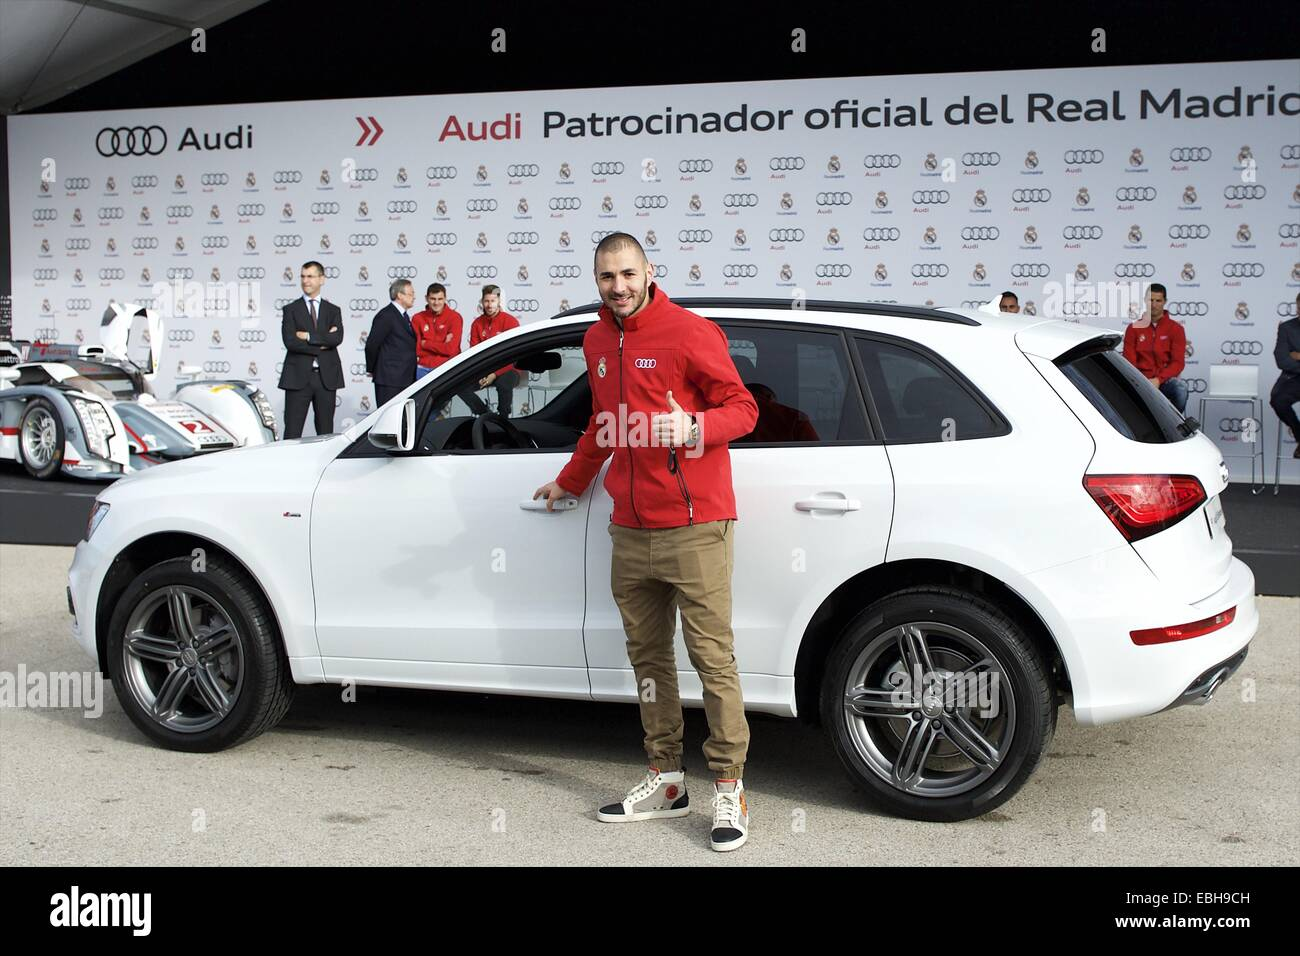 1st Dec, 2014. Karim Benzema Received The New Audi Car During The  Presentation Of Real Madridu0027s New Cars Made By Audi At Valdebebas On  December 1, ...